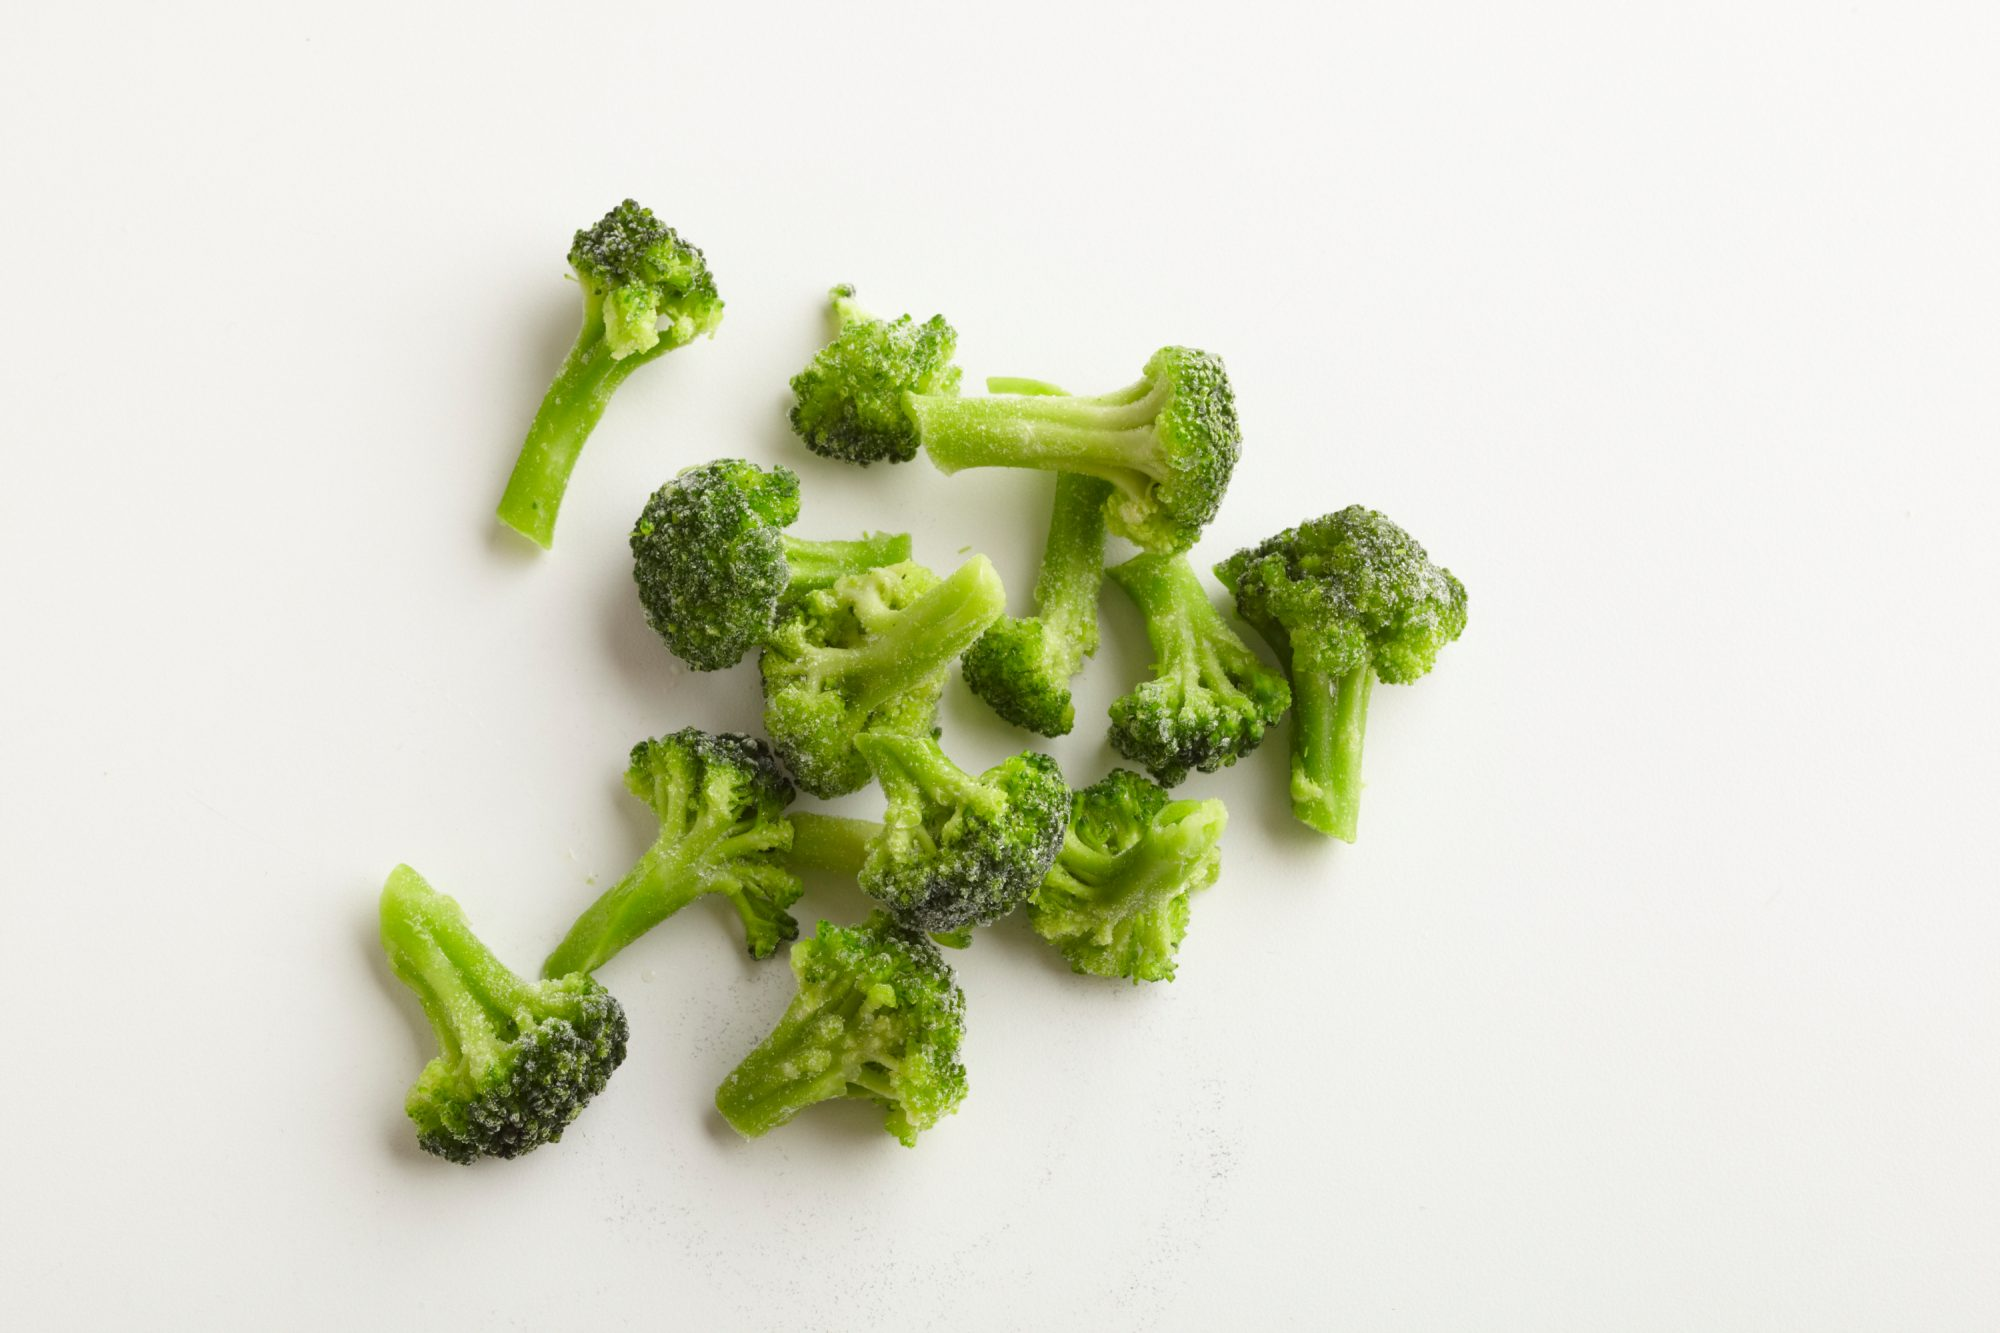 frozen broccoli on white background